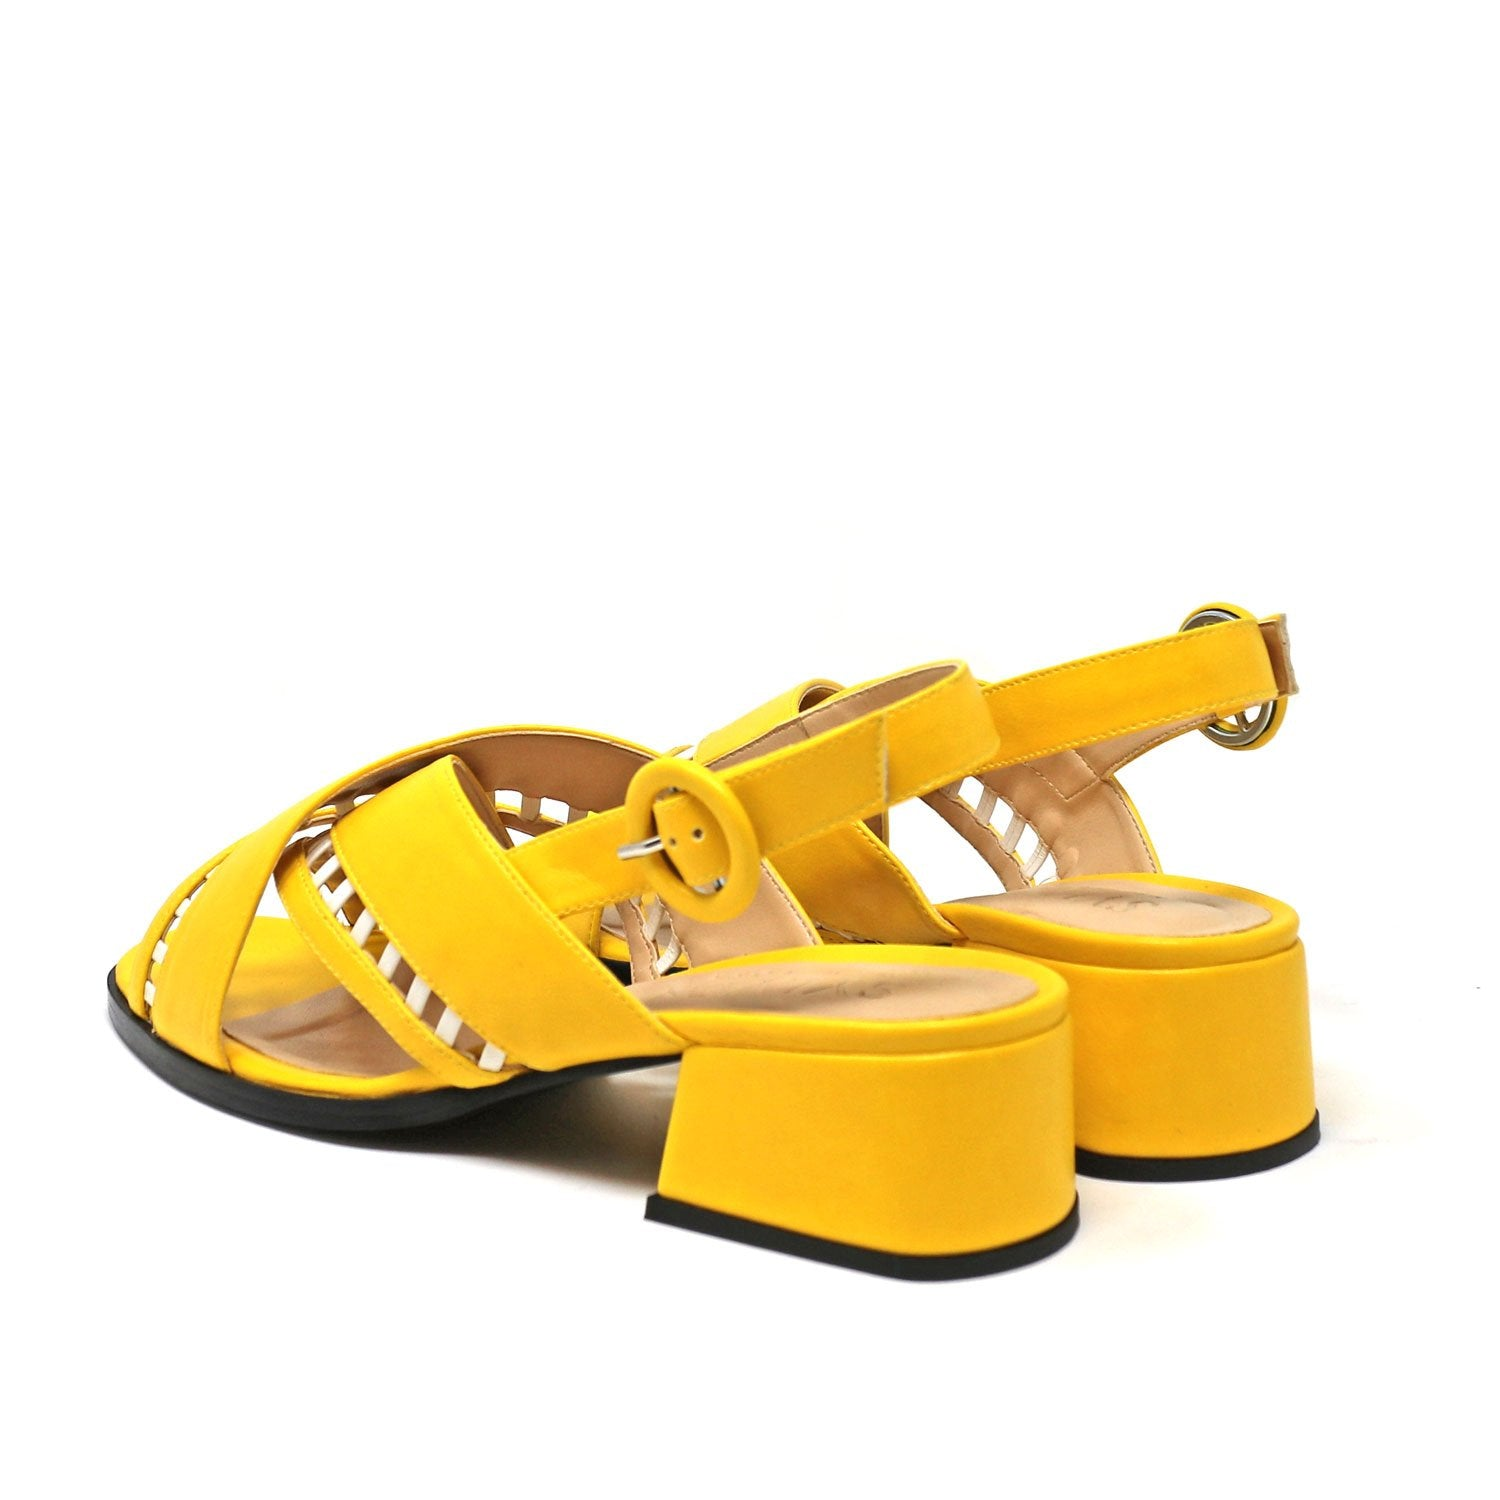 Sustainable lifestyle brand Sylven New York Vegan Footwear at PazLifestyle.com